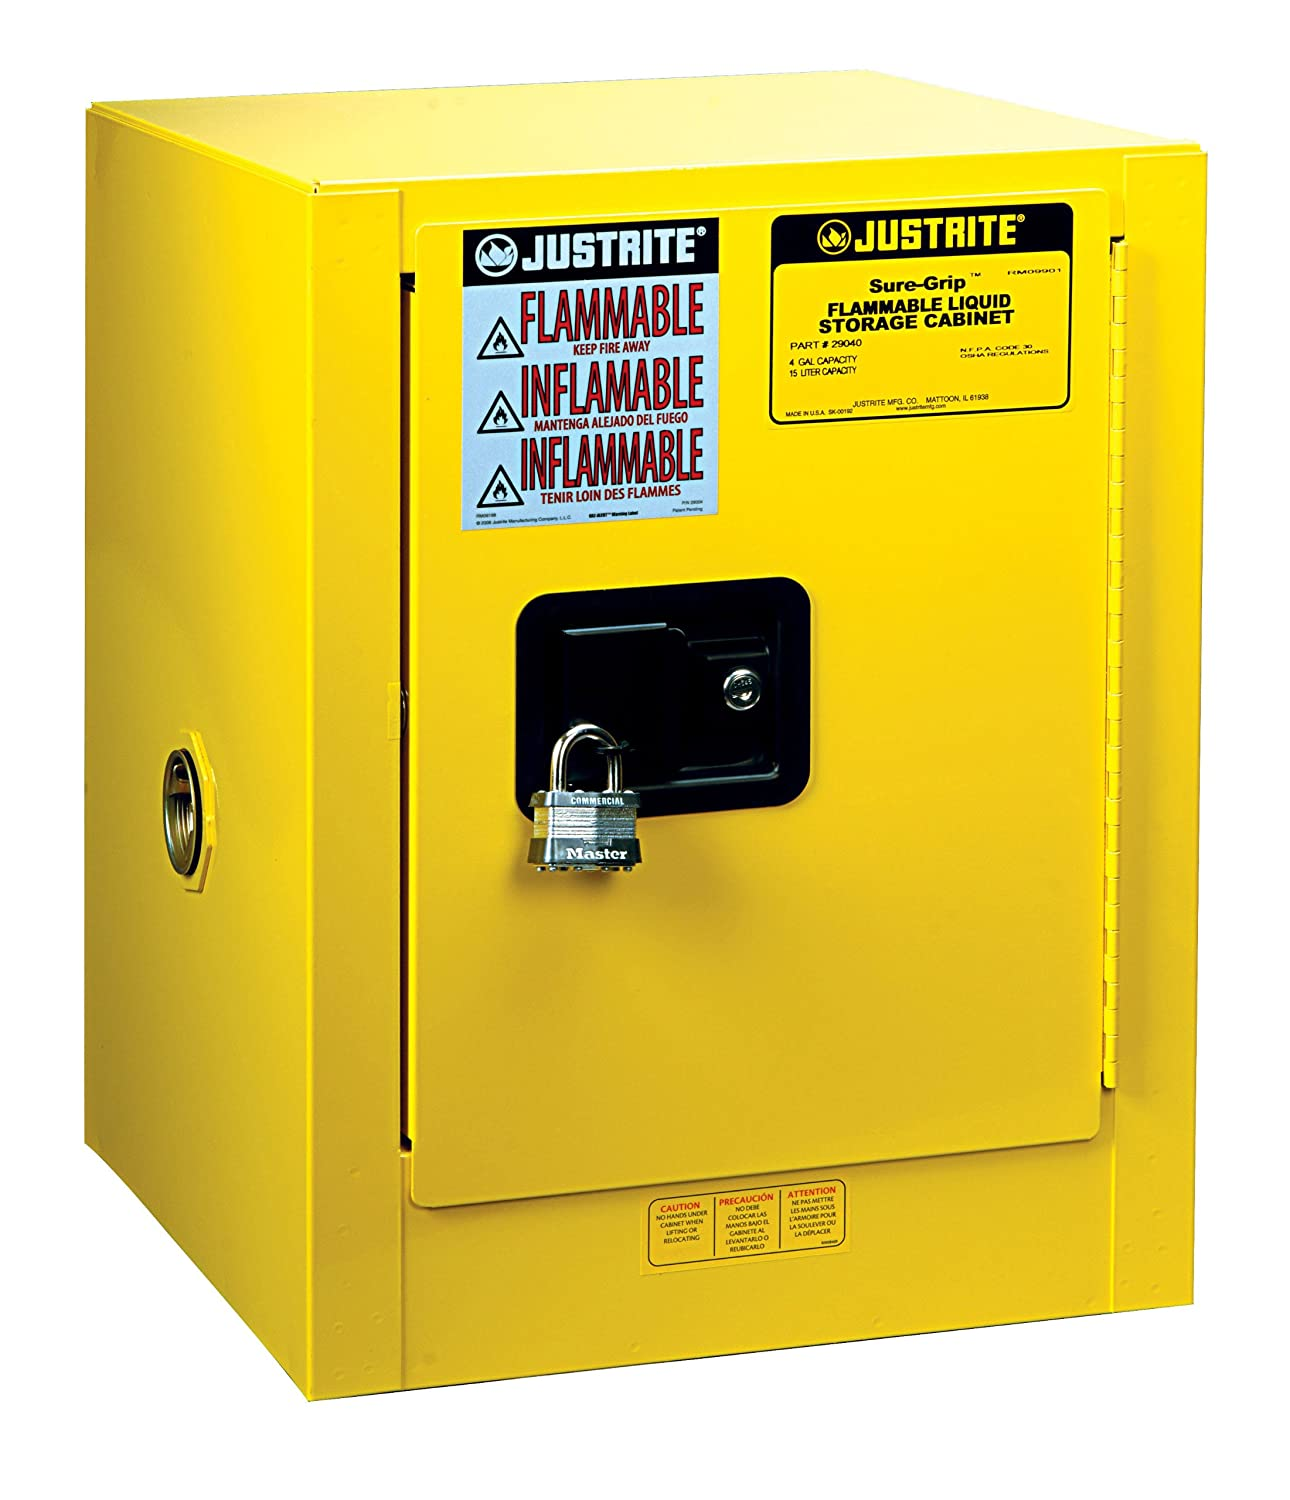 Fire Safe Cabinets Justrite Sure Grip Ex Safety Cabinet For Flammable Liquids 1